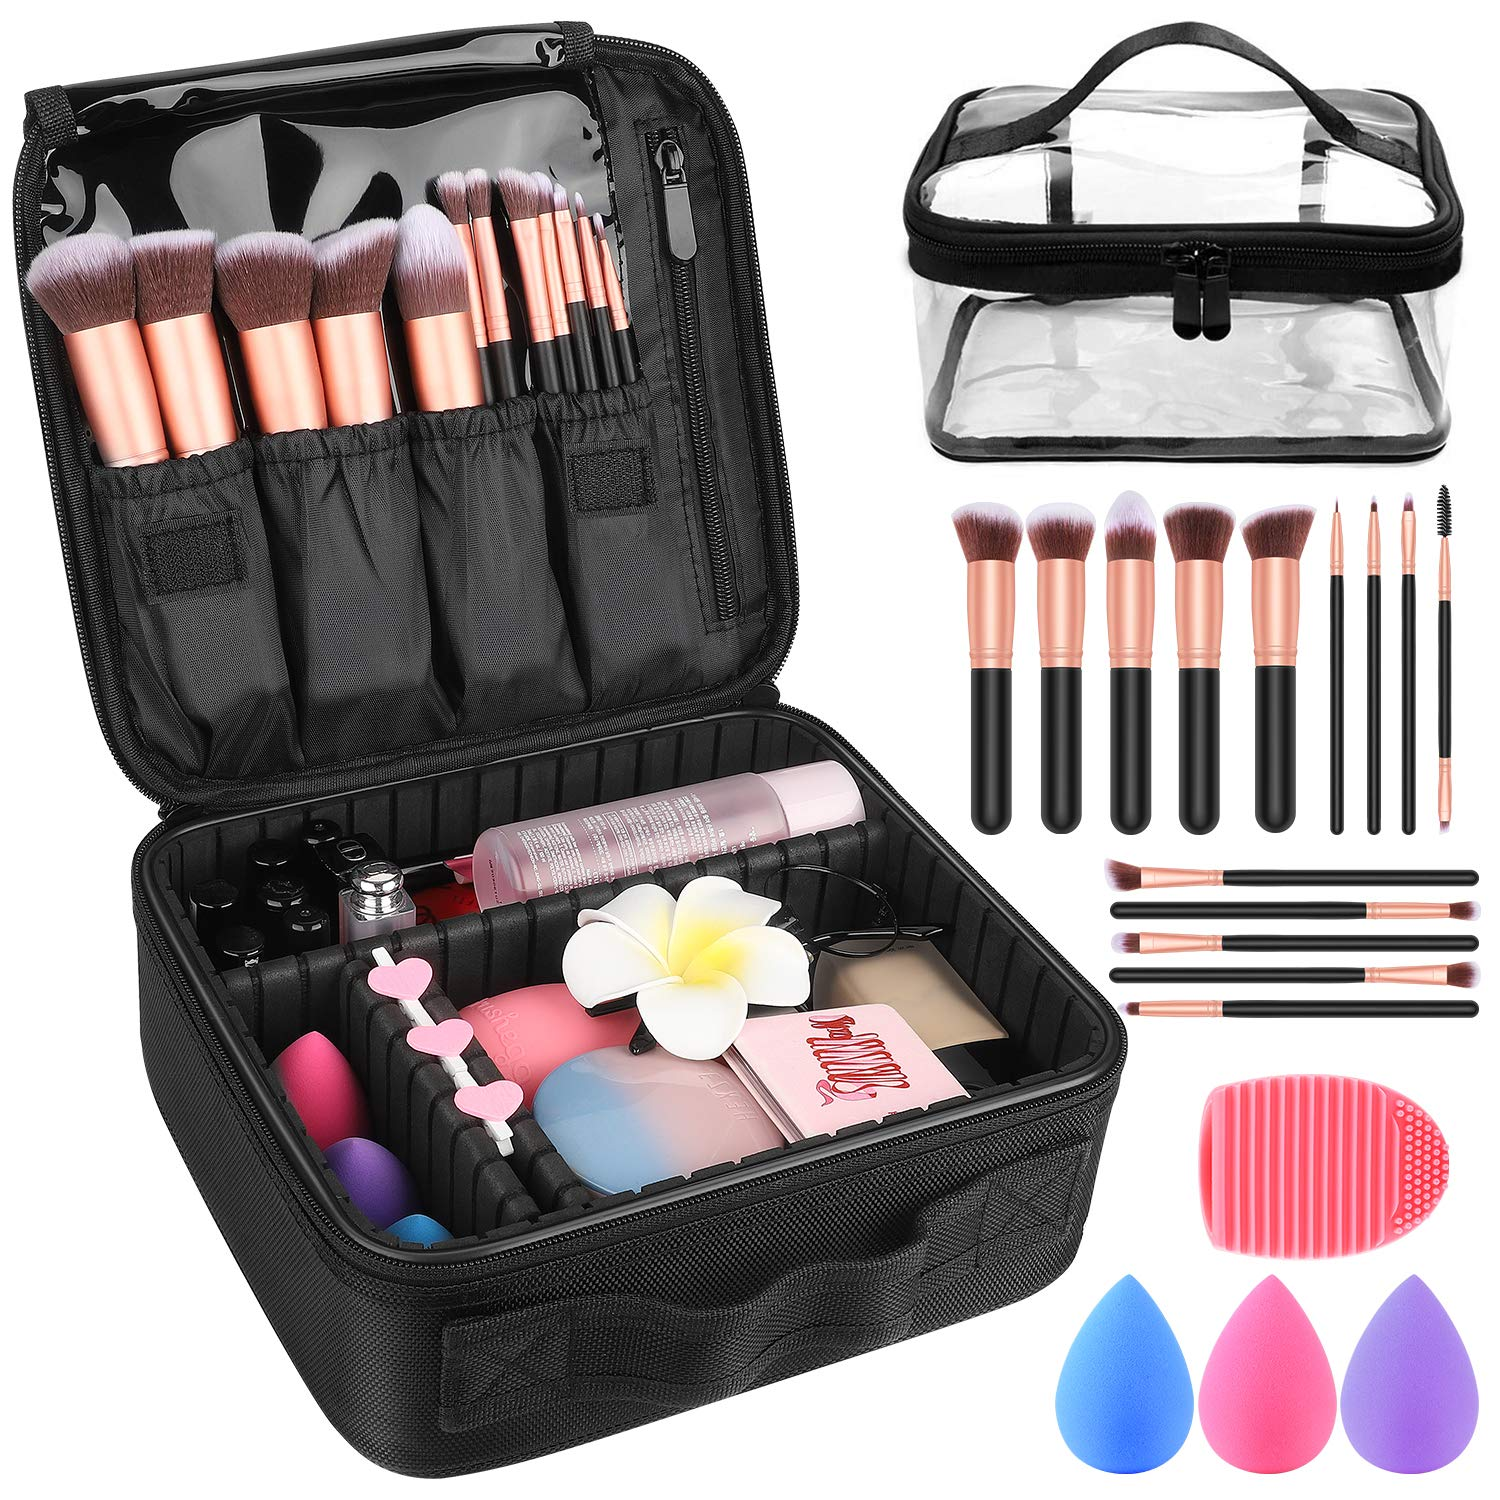 Makeup Travel Case, with DIY Adjustable Divider Cosmetic Train Bag 10.3'' Organizer Perfect Set Contain 14pcs Premium Makeup Brushes 3 pcs Makeup Sponge Transparent Travel Bag Makeup Brush Cleaner